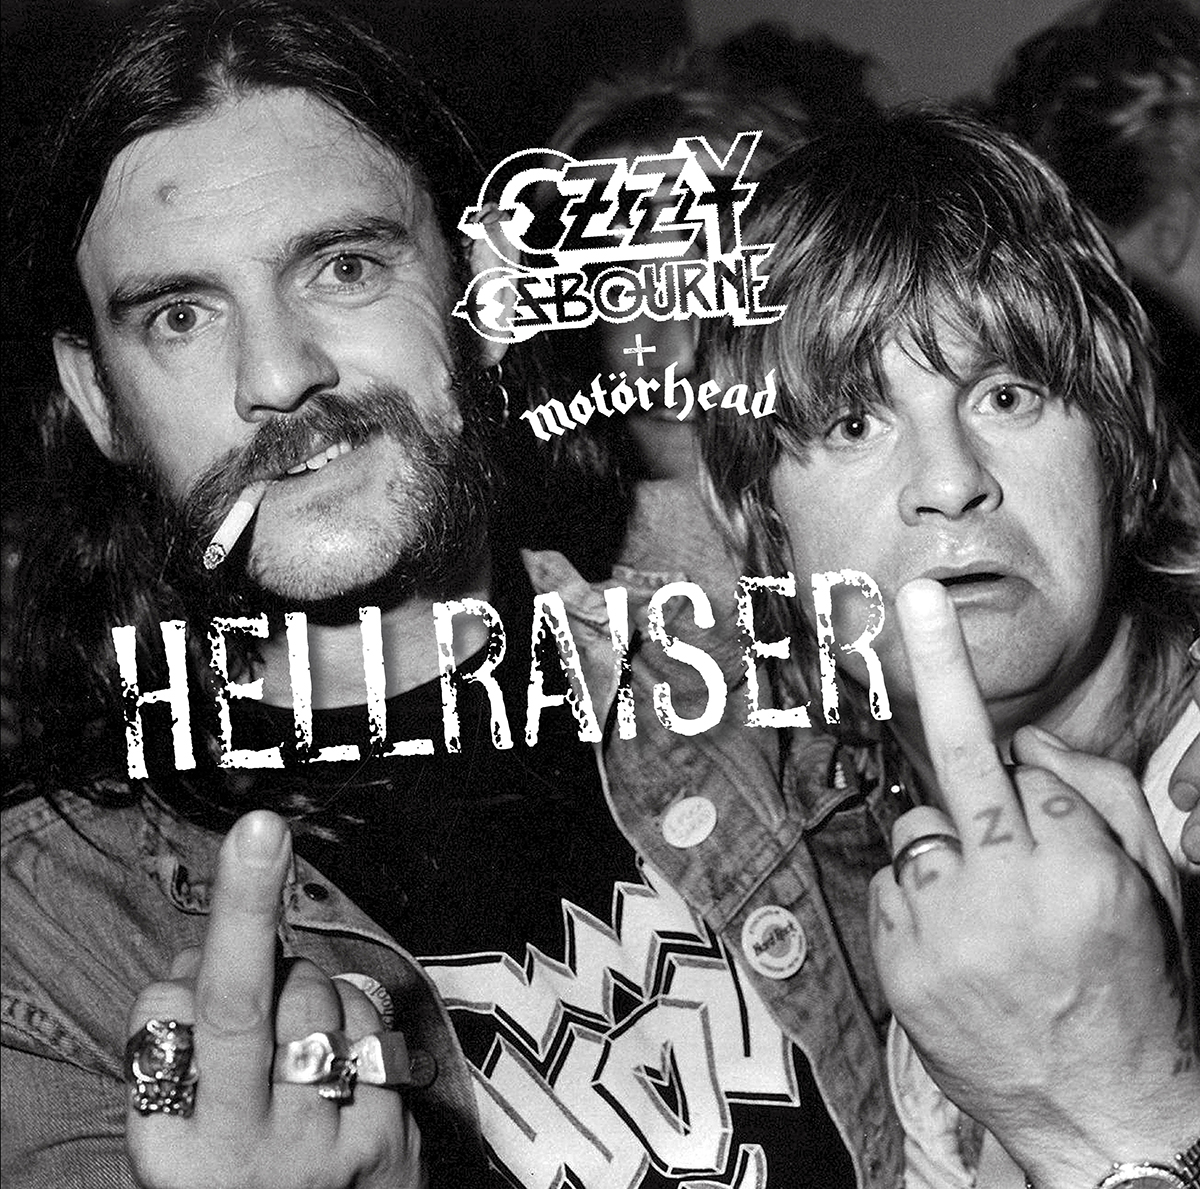 """Ozzy Osbourne's 30th Anniversary 'No More Tears' Expanded Digital Deluxe Edition To Include New Version Of """"Hellraiser"""" As A Duet With Ozzy and Lemmy Kilmister"""